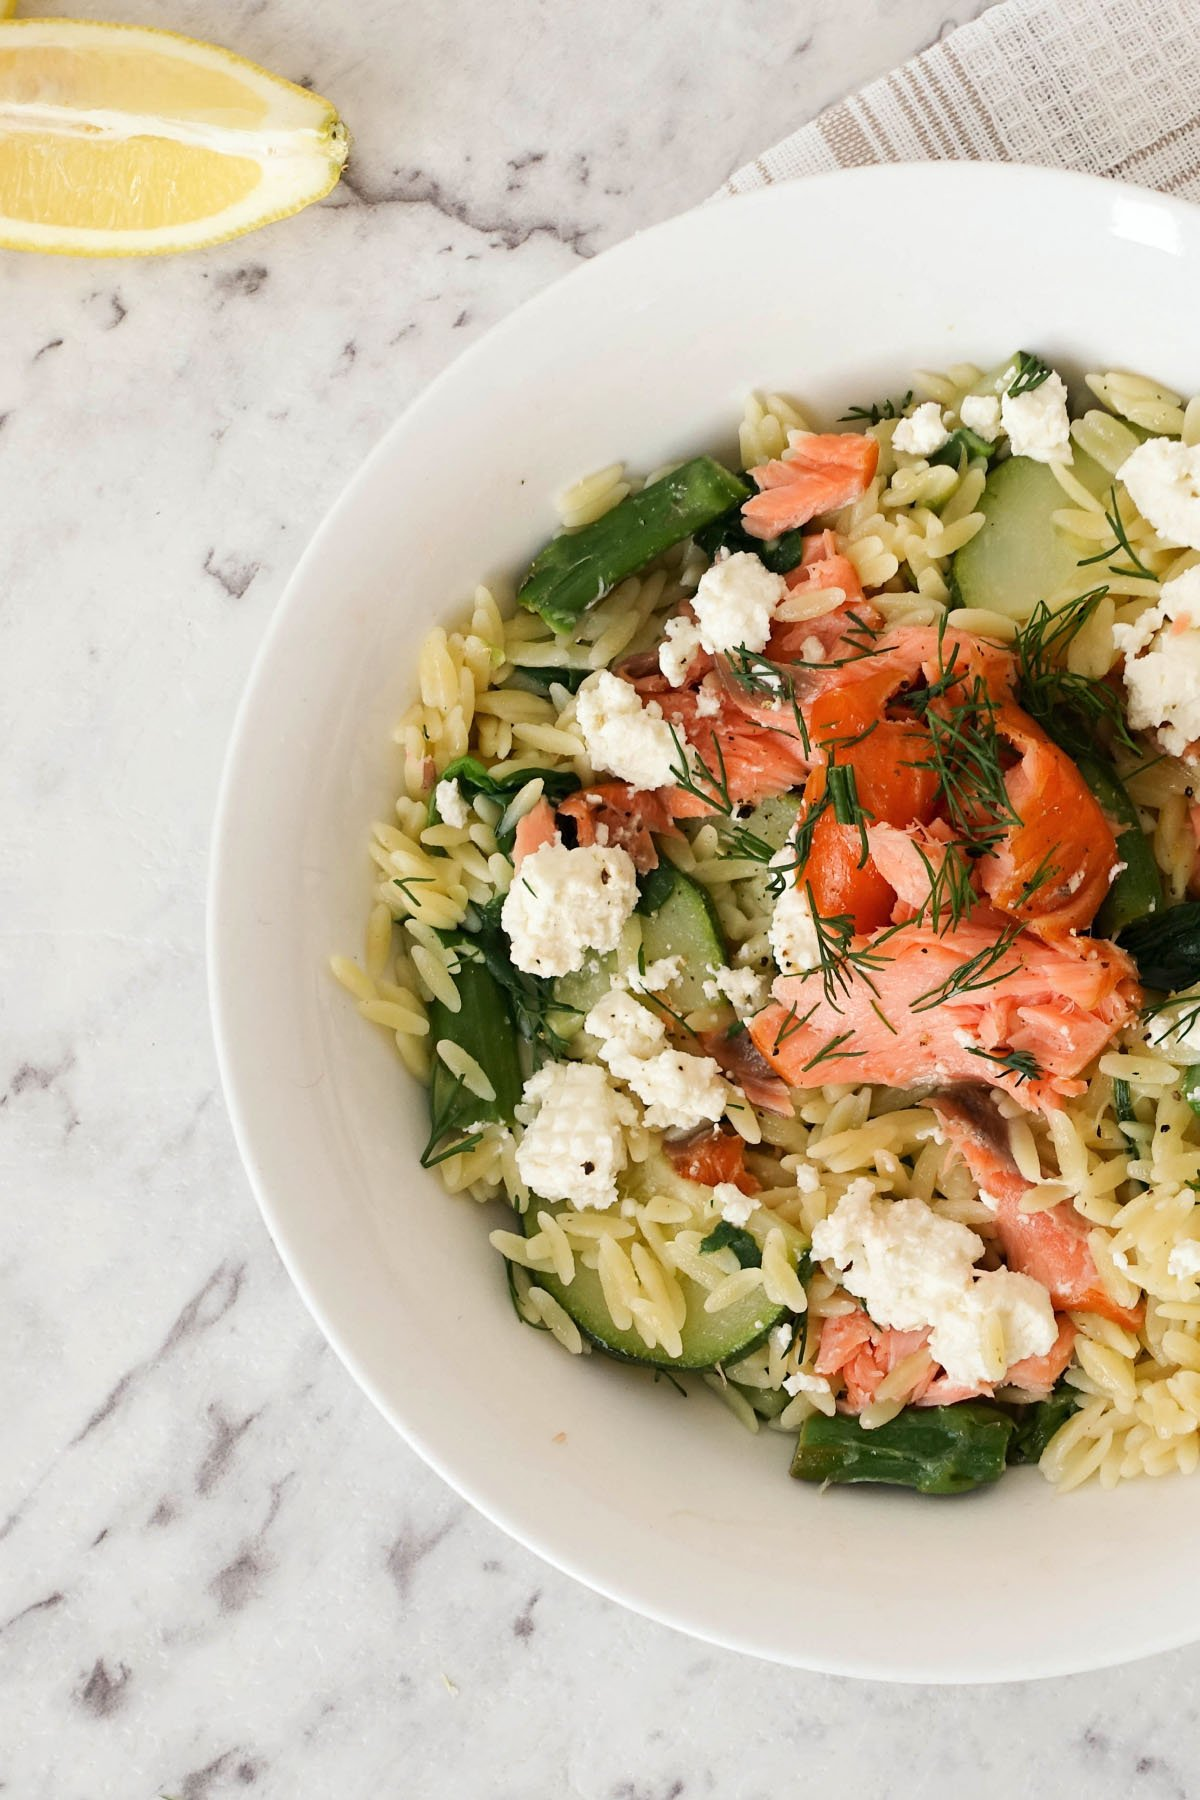 Risoni with Smoked Salmon, Ricotta & Garden Veggies - You Totally Got This - Quick & Easy Recipe